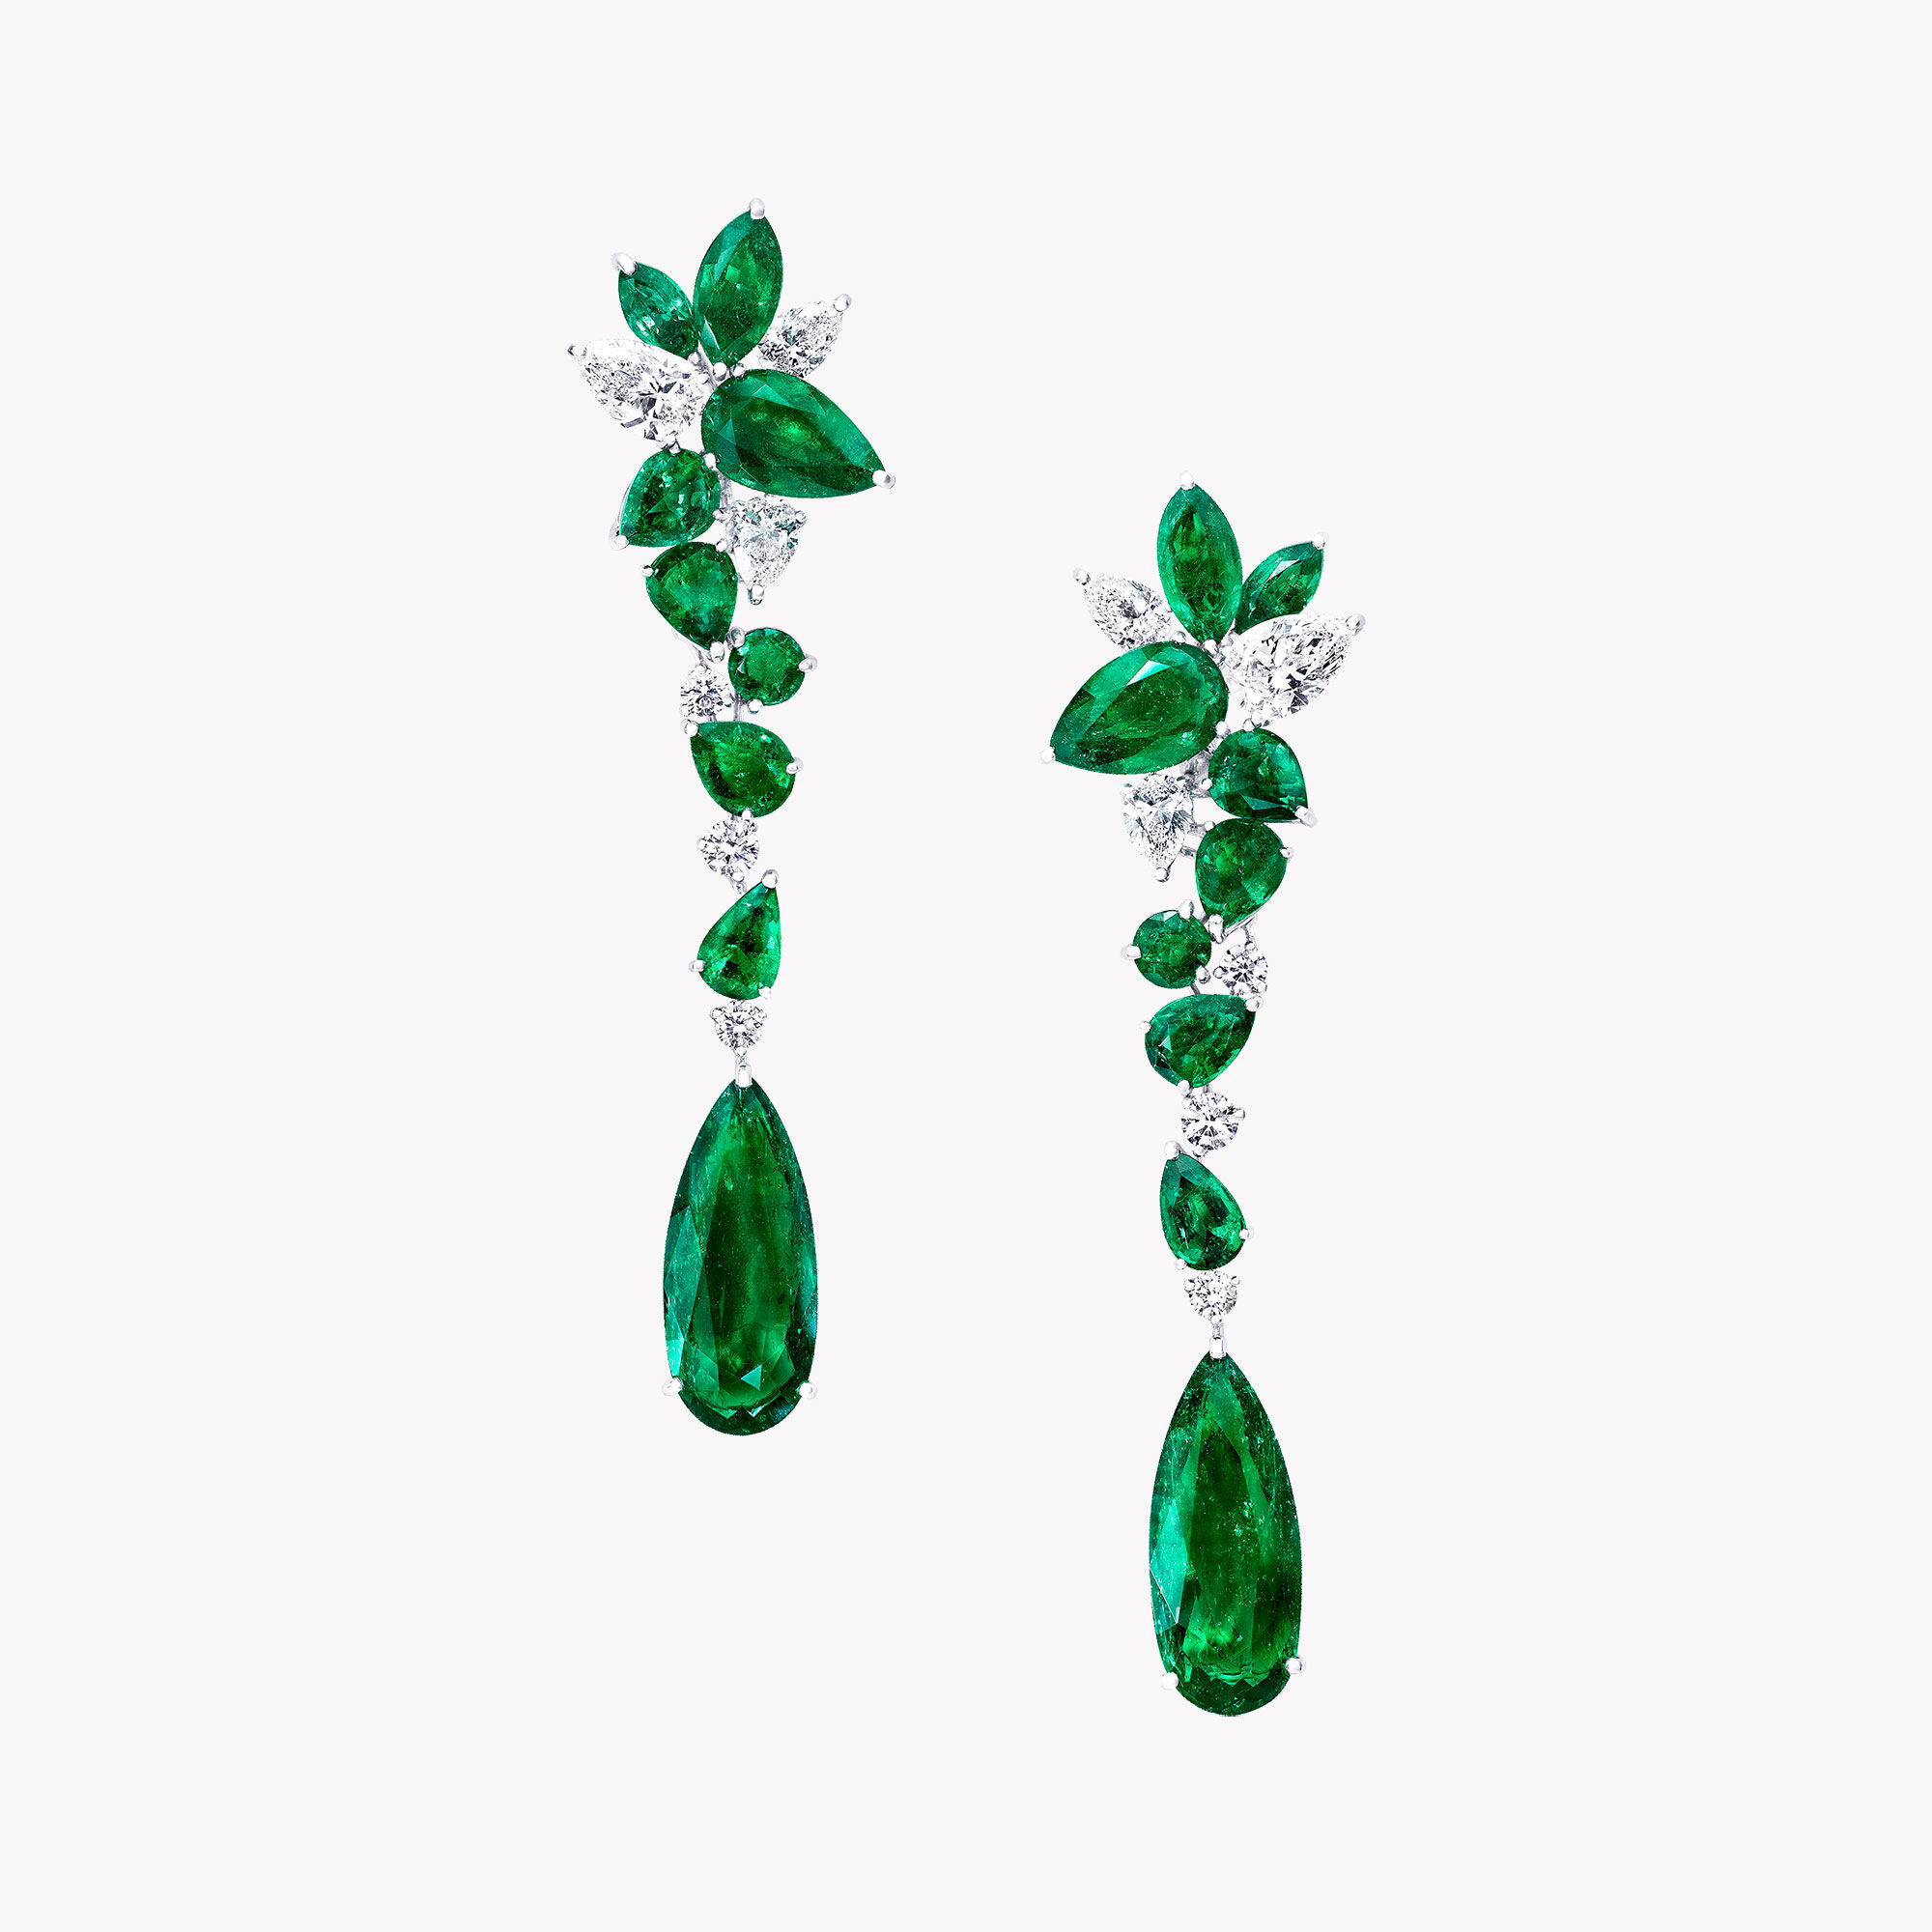 A pair of Graff emerald and white diamond high jewellery earrings